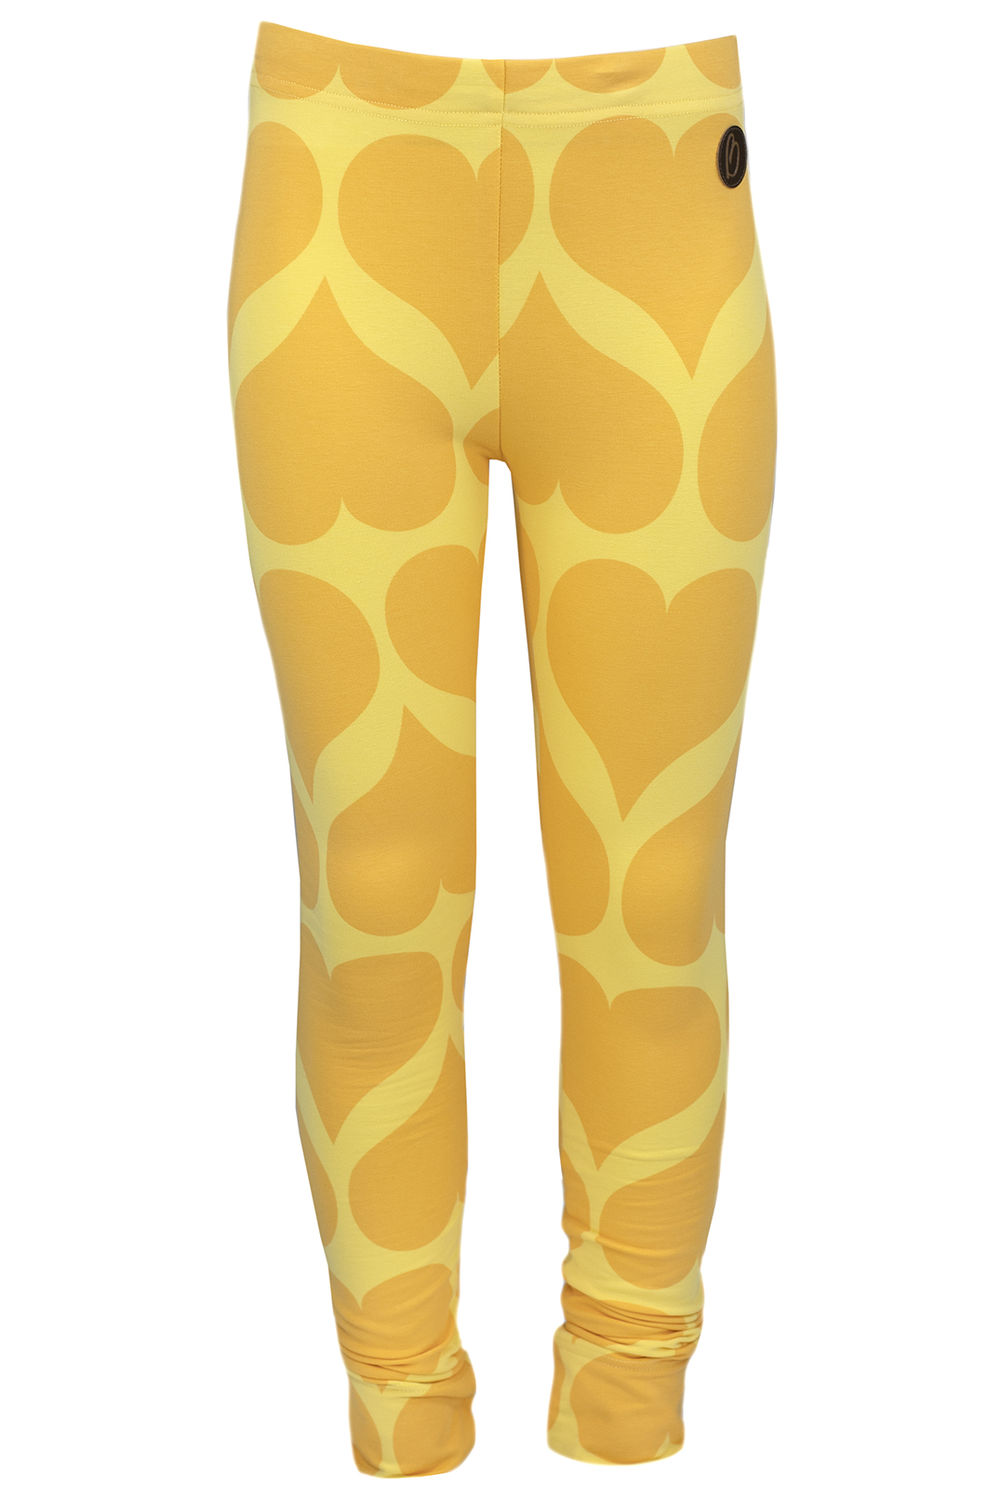 PARIS Collegeleggingsit, Hearts Yellow